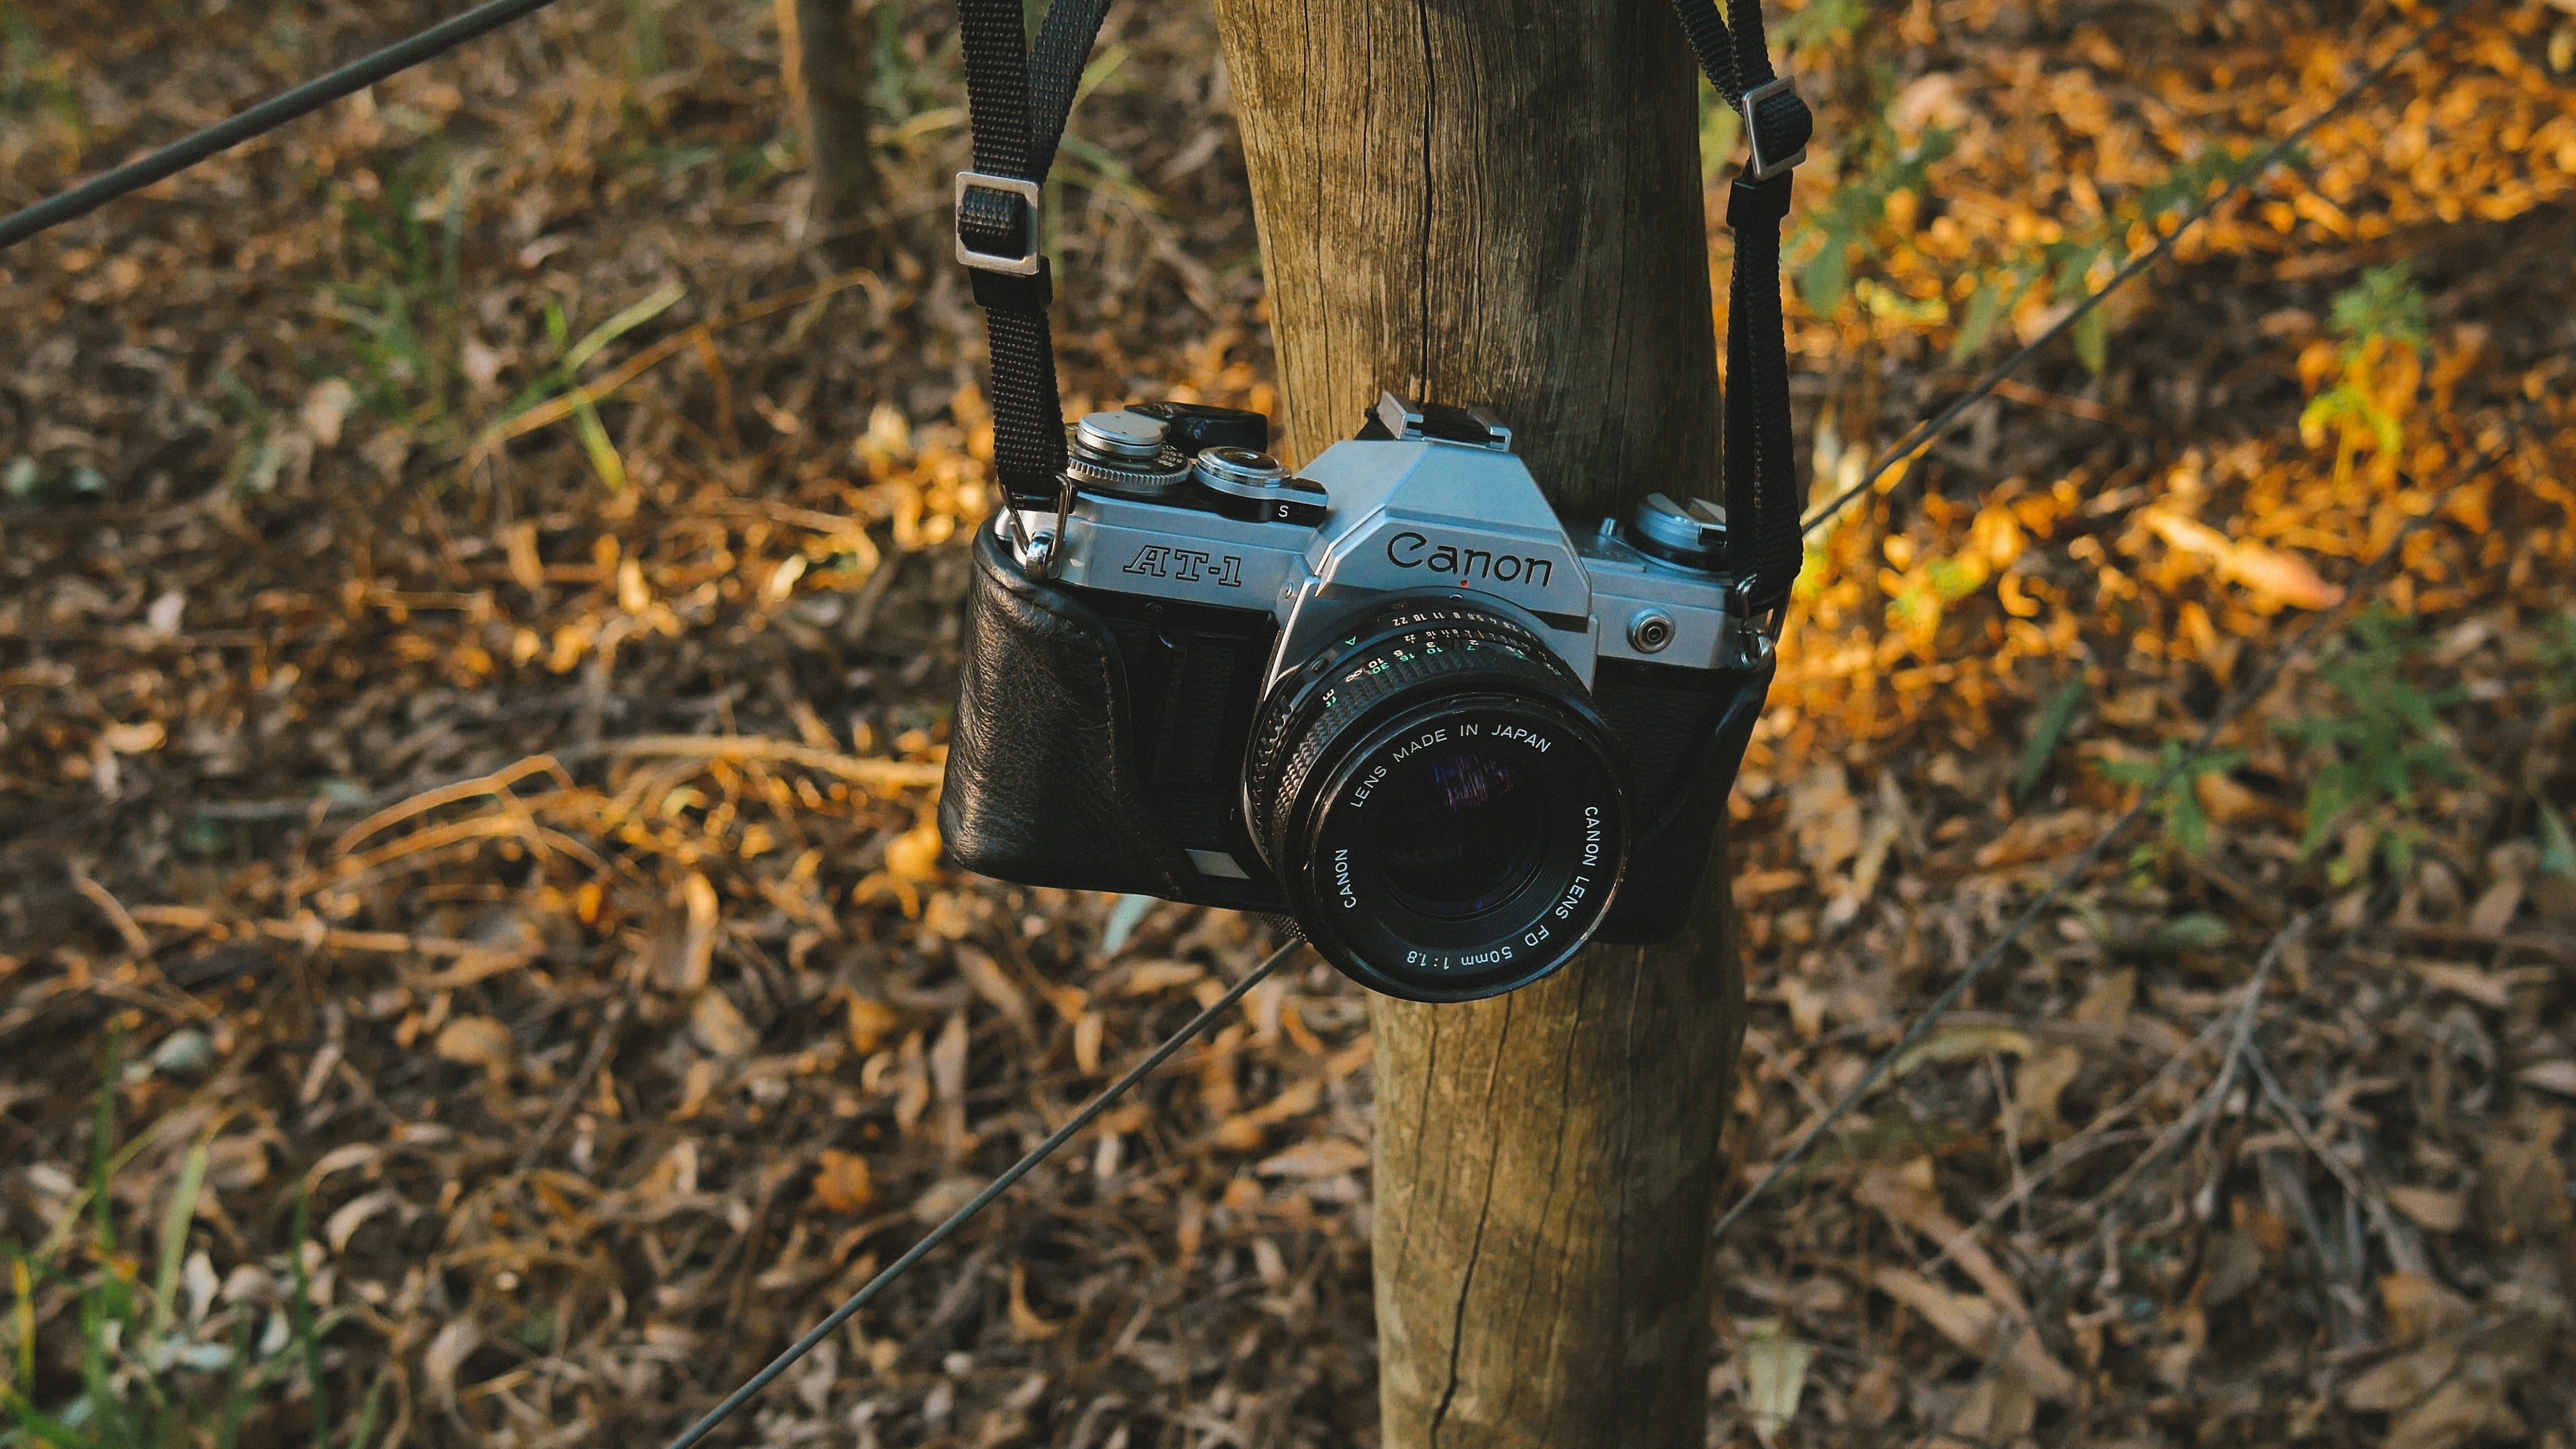 black and gray Canon SLR camera hanged on wooden trunk